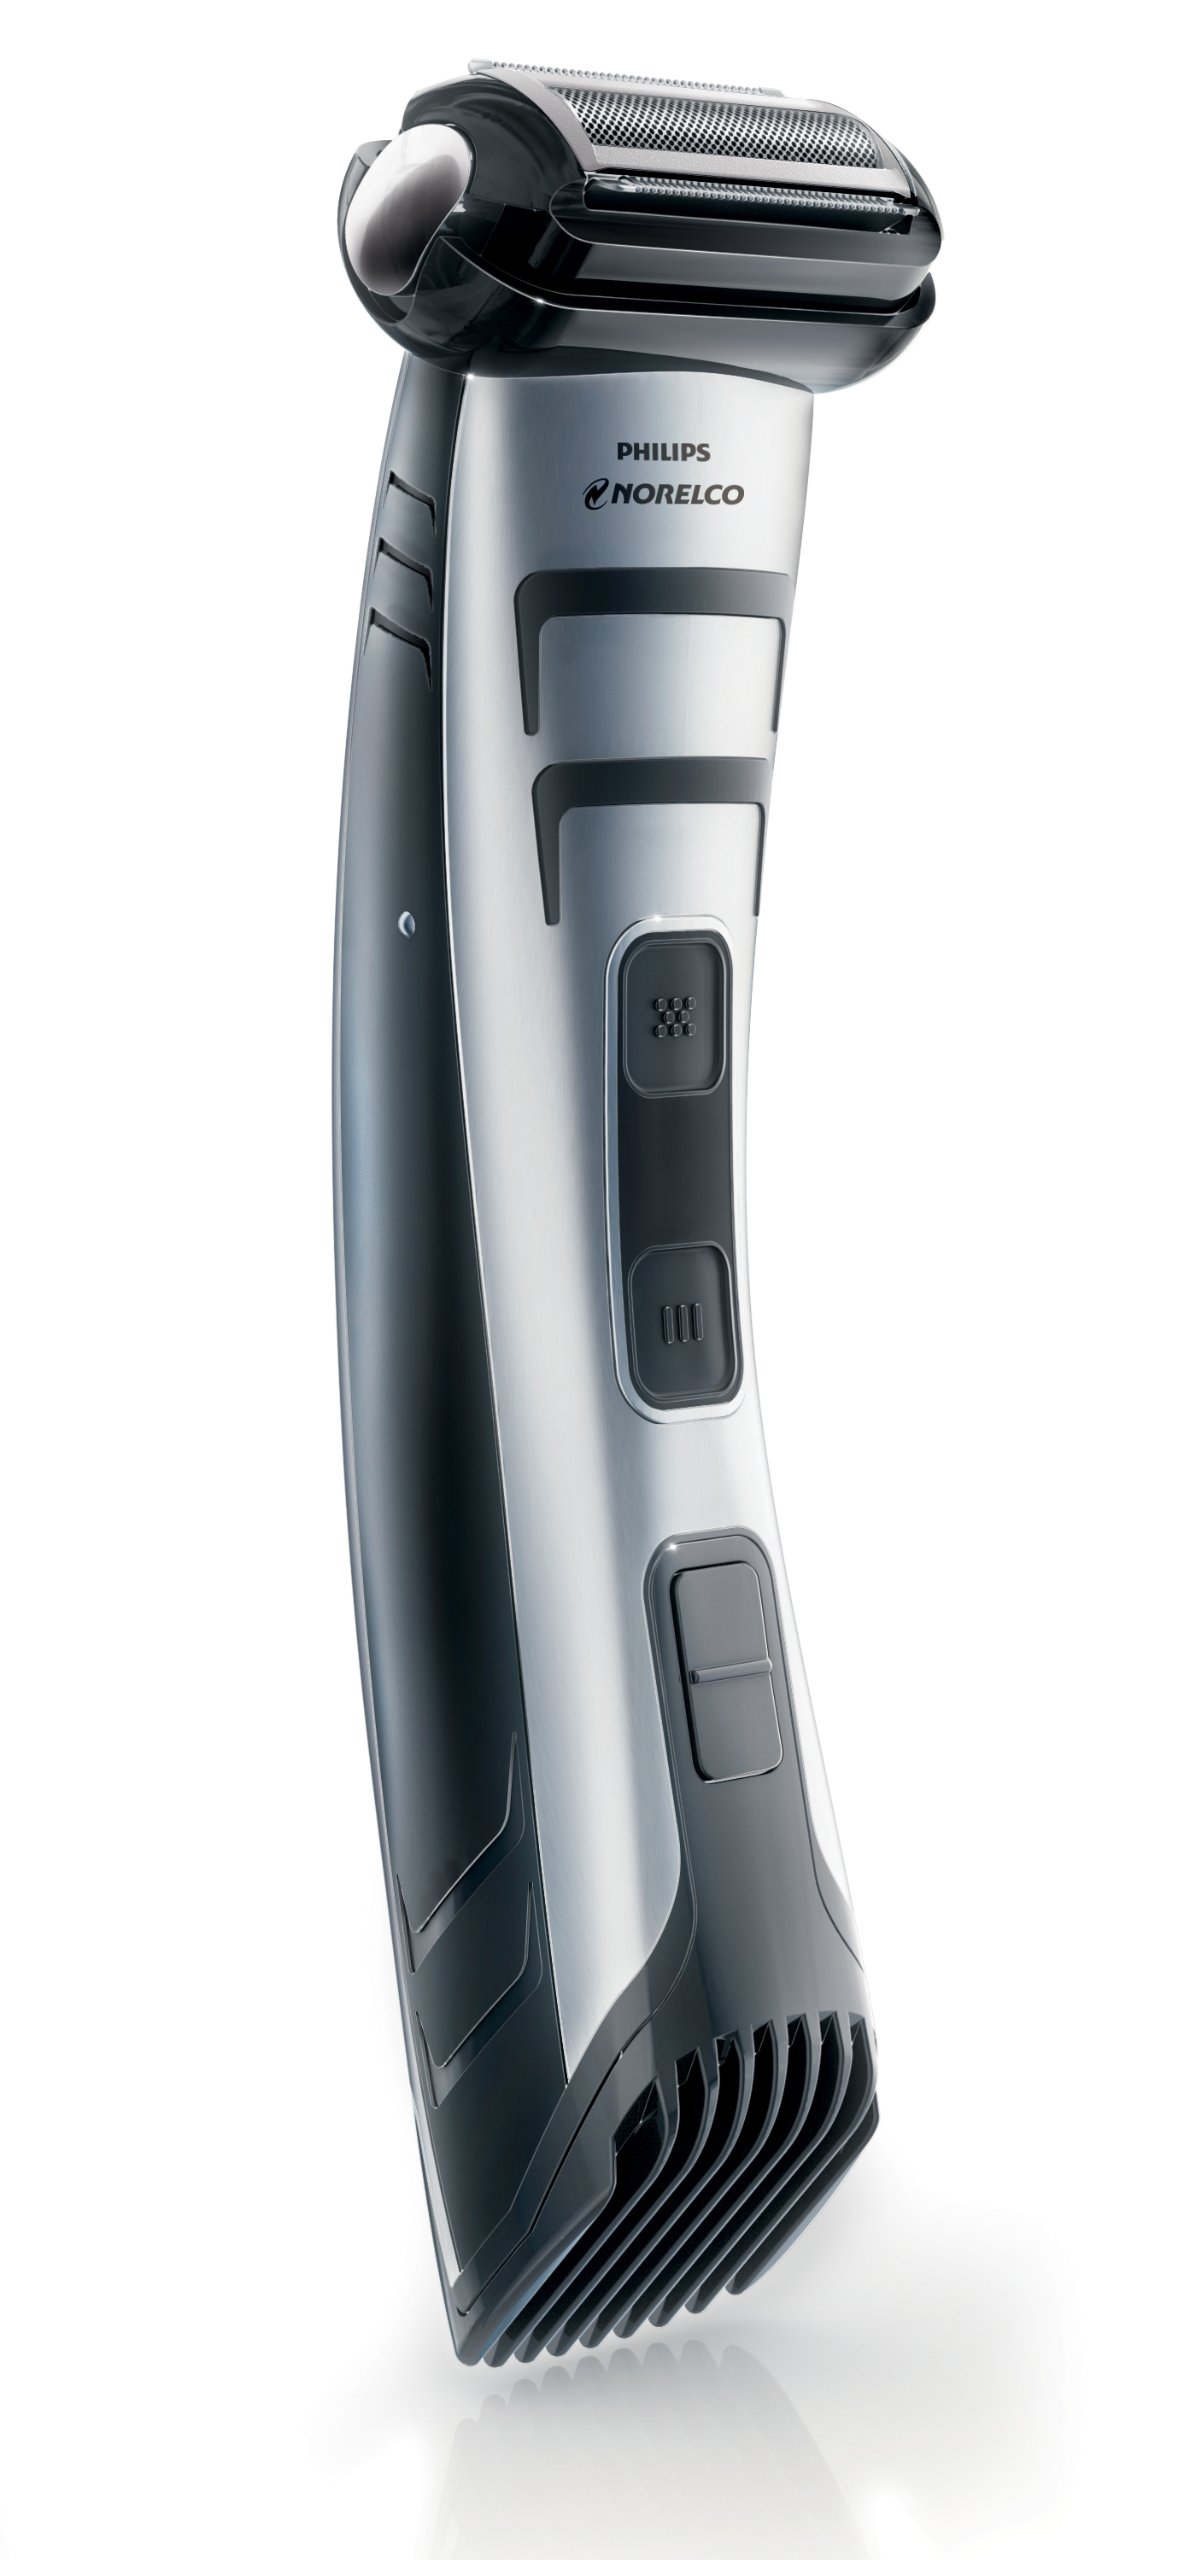 Philips Norelco Bodygroomer BG2040/49 - skin friendly, showerproof, body trimmer and shaver by Philips Norelco